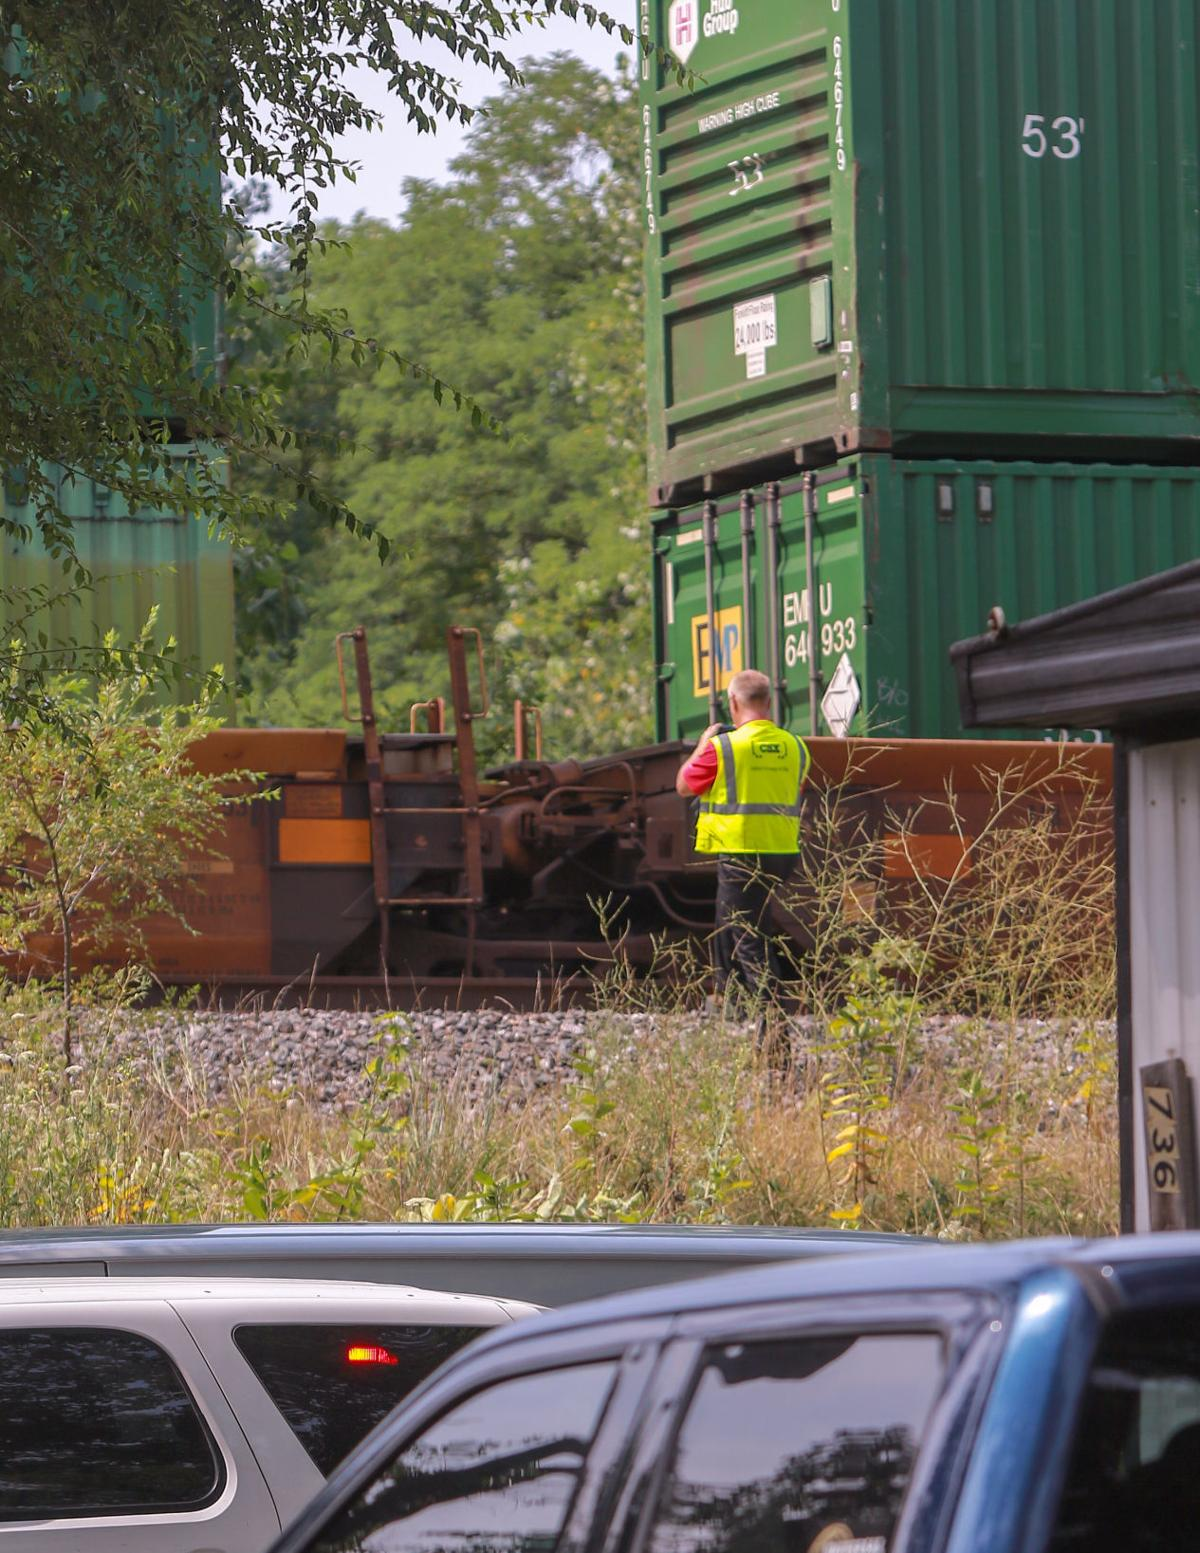 Train hits toddlers in Portage